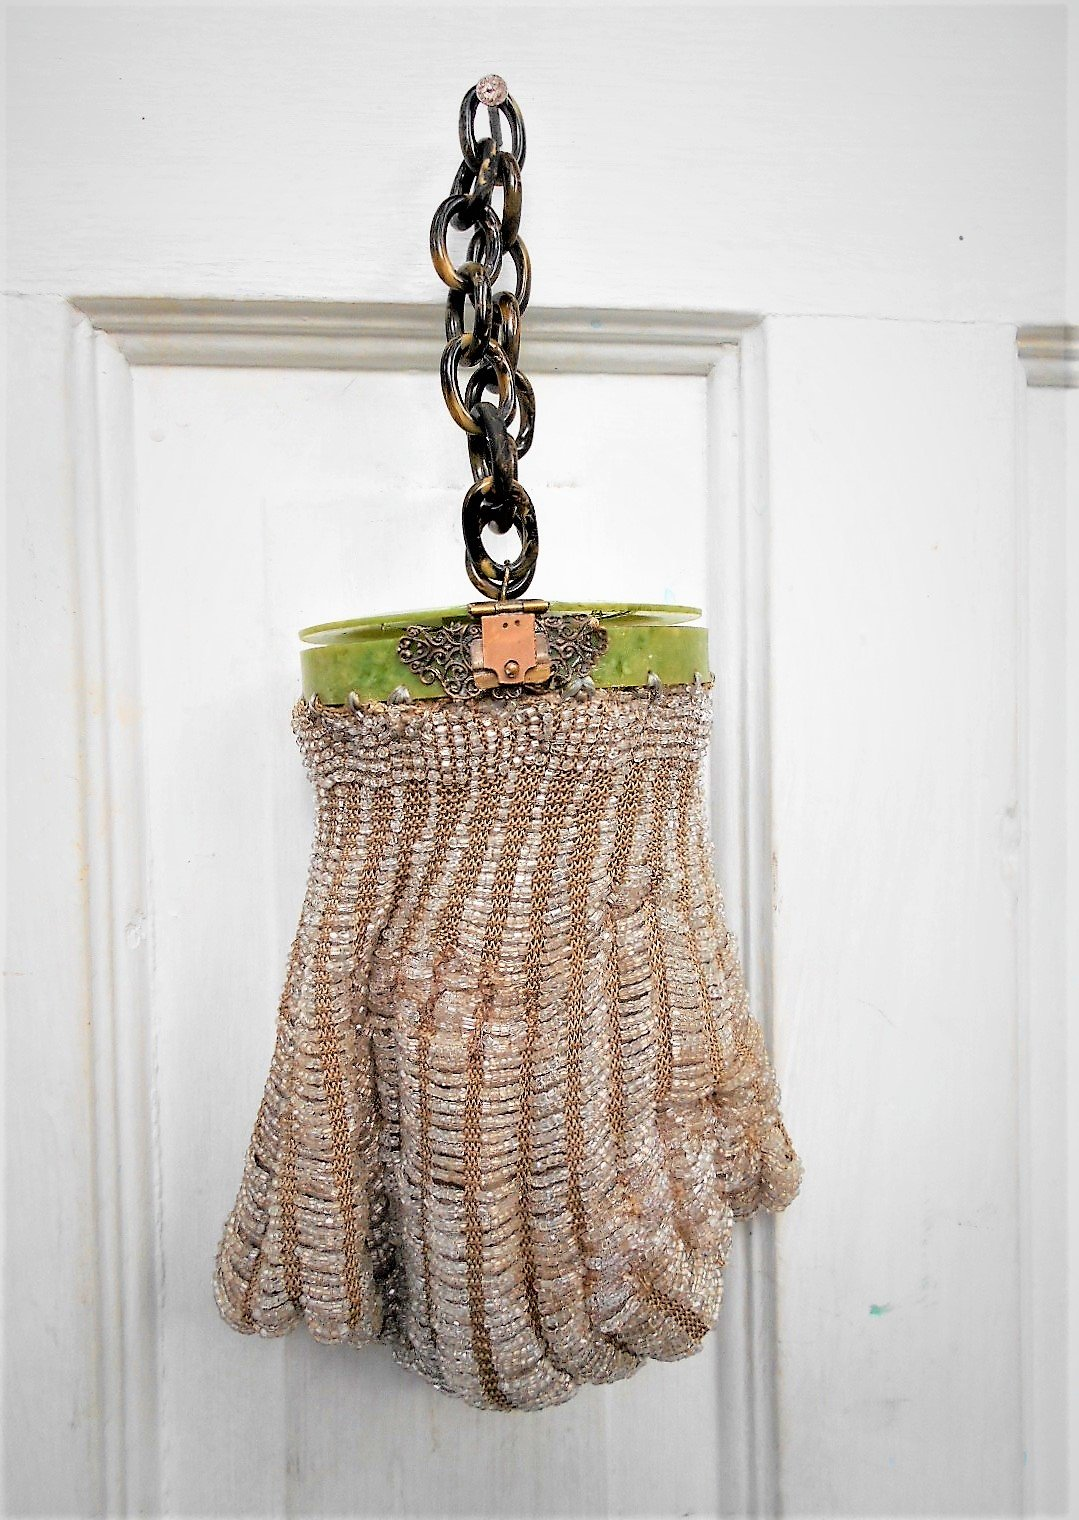 Roaring 20s Flapper Purse, Sparkling Clear Beads w/ Beige Tapered Crocheted Bag Colorful Celluloid Top & Chain. Gorgeous, Nearly 100 Years